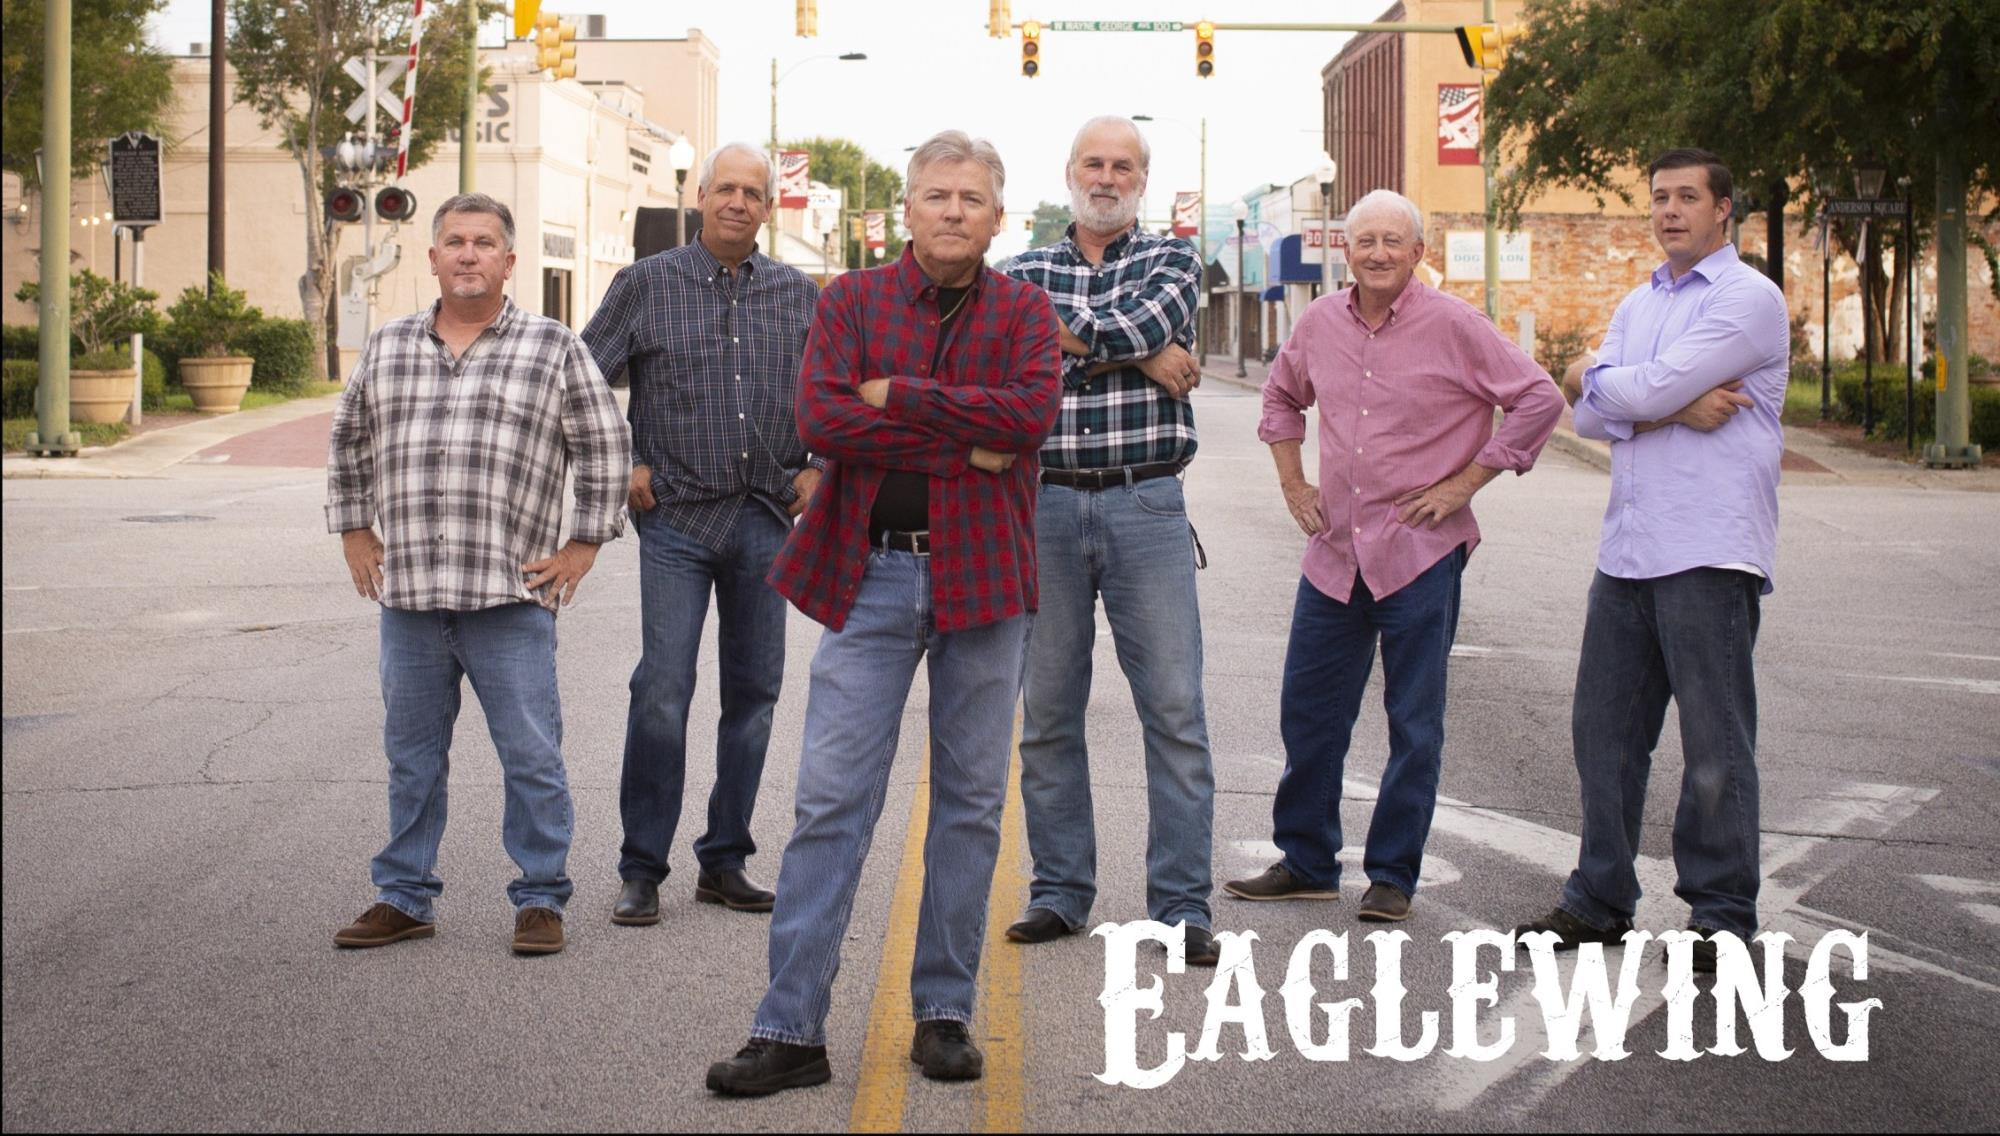 Eaglewing street pic